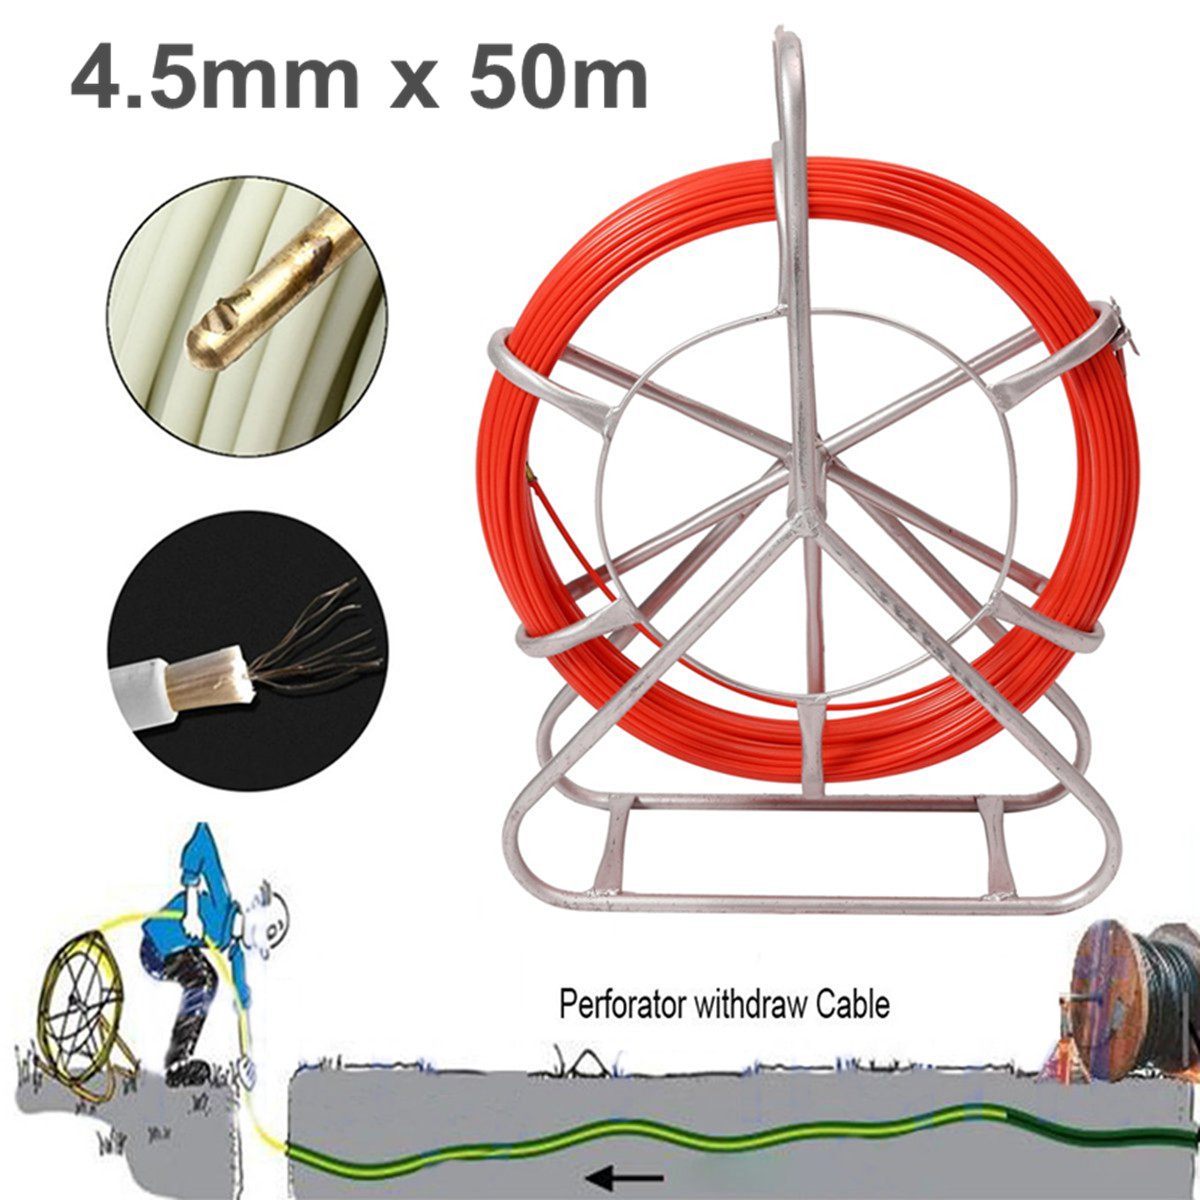 Fish Tape Fiberglass Duct Rodder Continuous Fiberglass Cable Puller Wire Running Wheel Stand